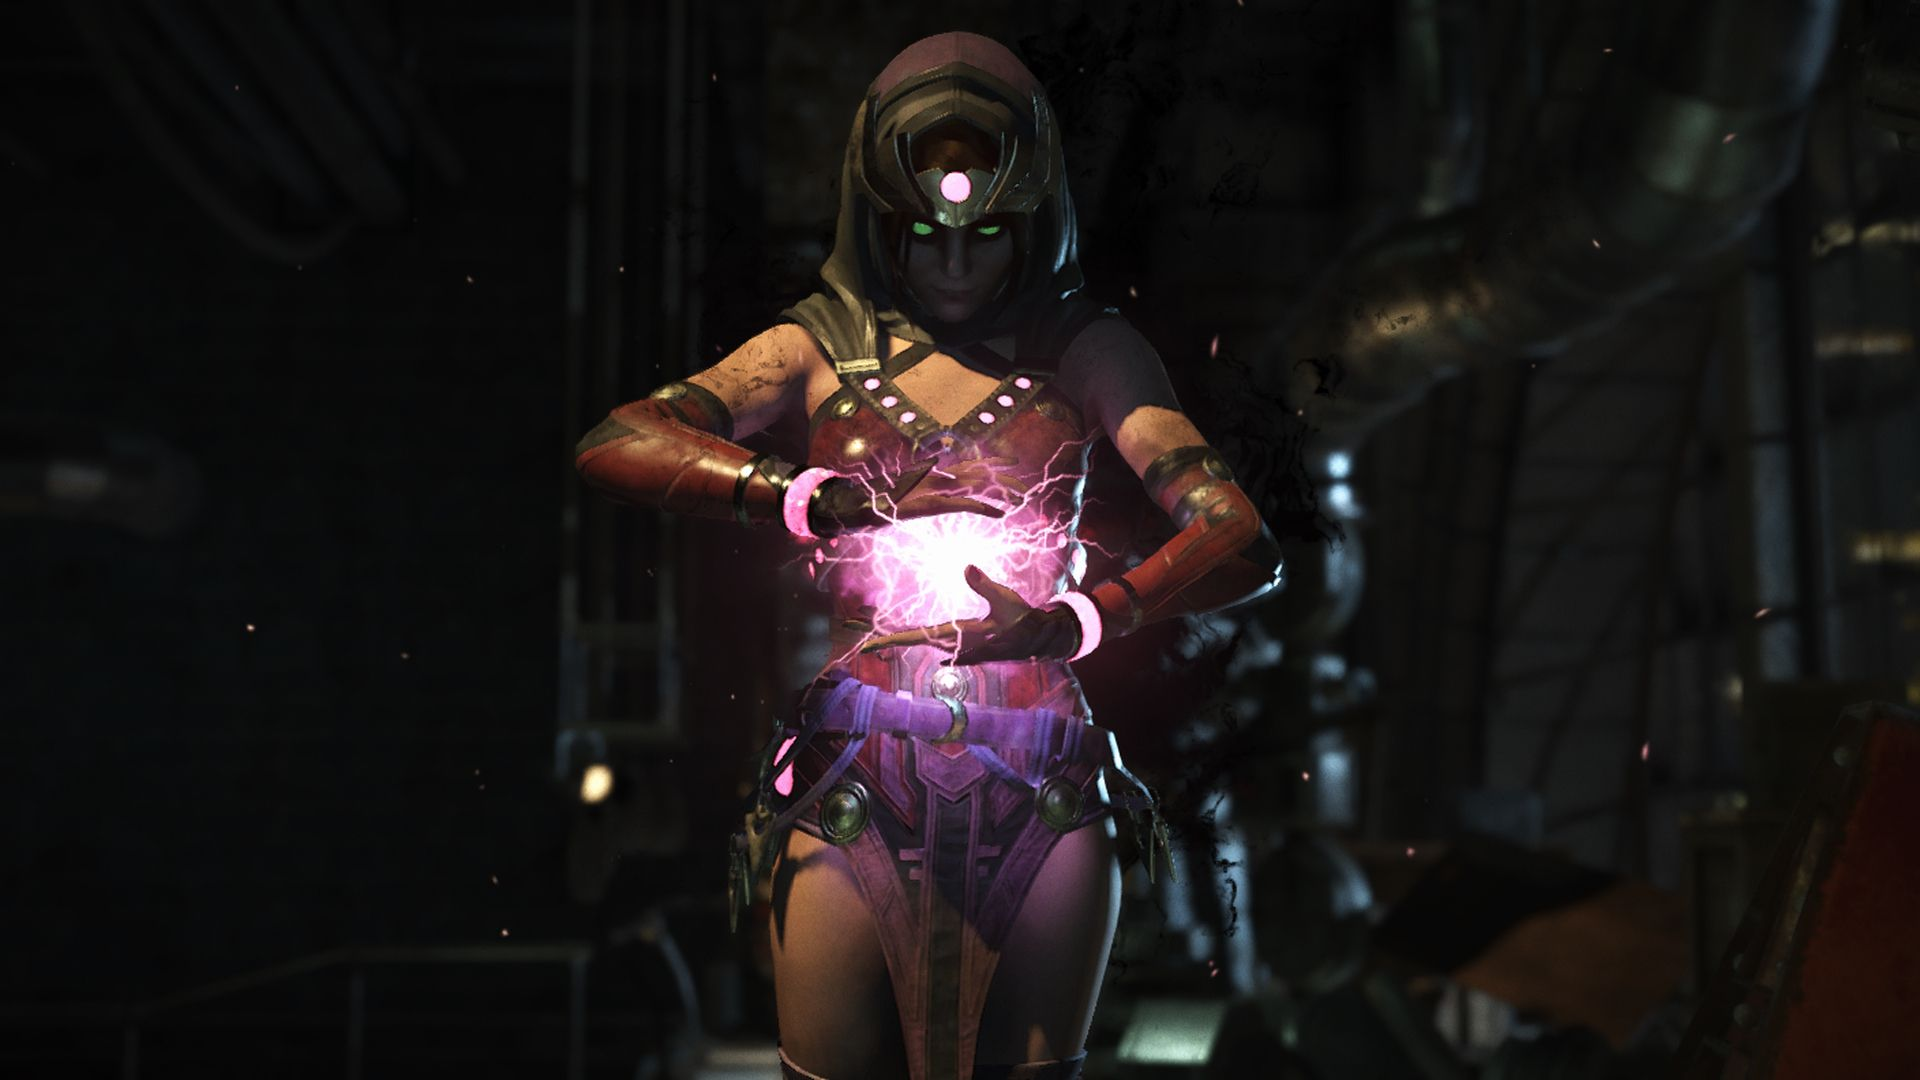 My Enchantress Injustice 2 I Absolutely Love Her Definitely One Of My Favorite Characters In The Game